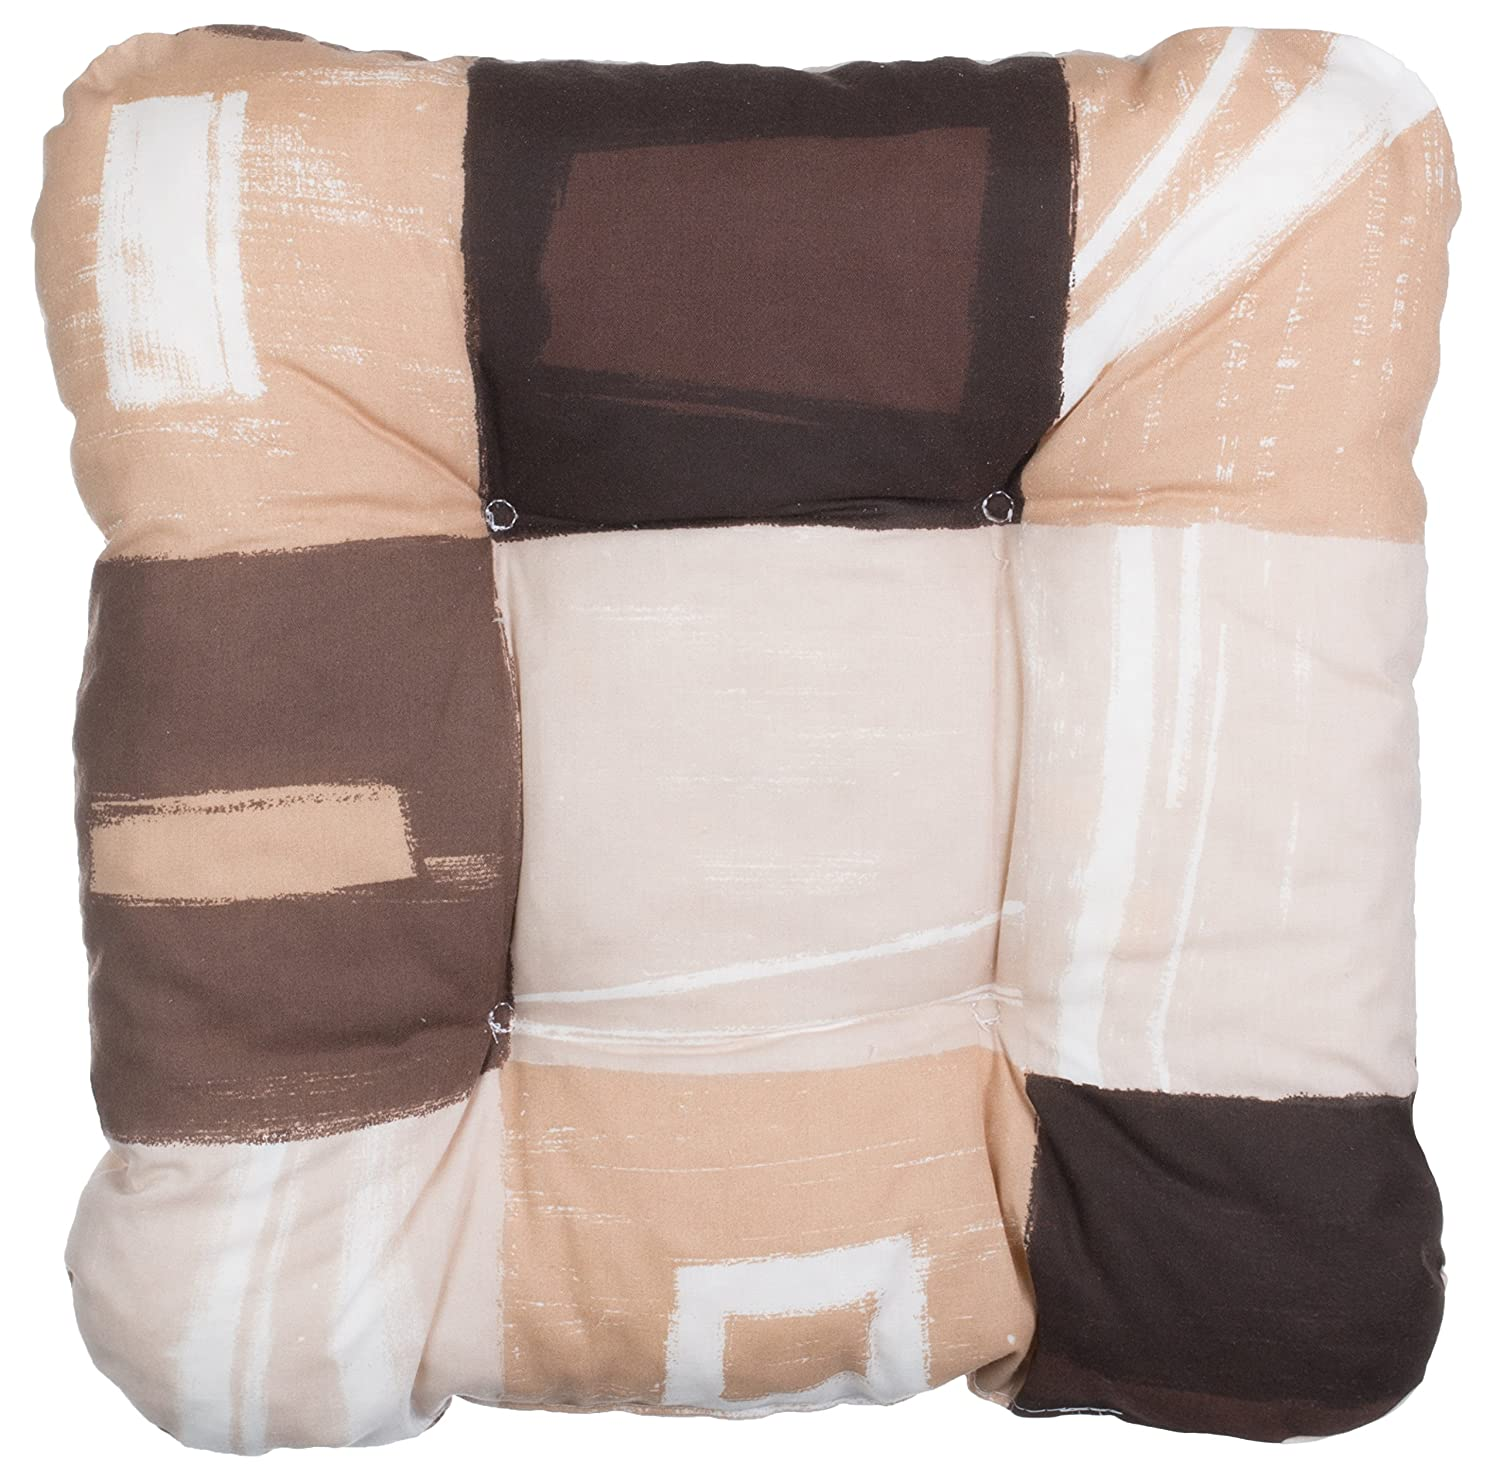 Brand Sseller Dining Chair Cushion Seat Cushion Seat Cover Pad for Indoor and Outdoor Use, 38x 38x 8cm–Various Colours, Beige/Kariert, 1 Brandsseller